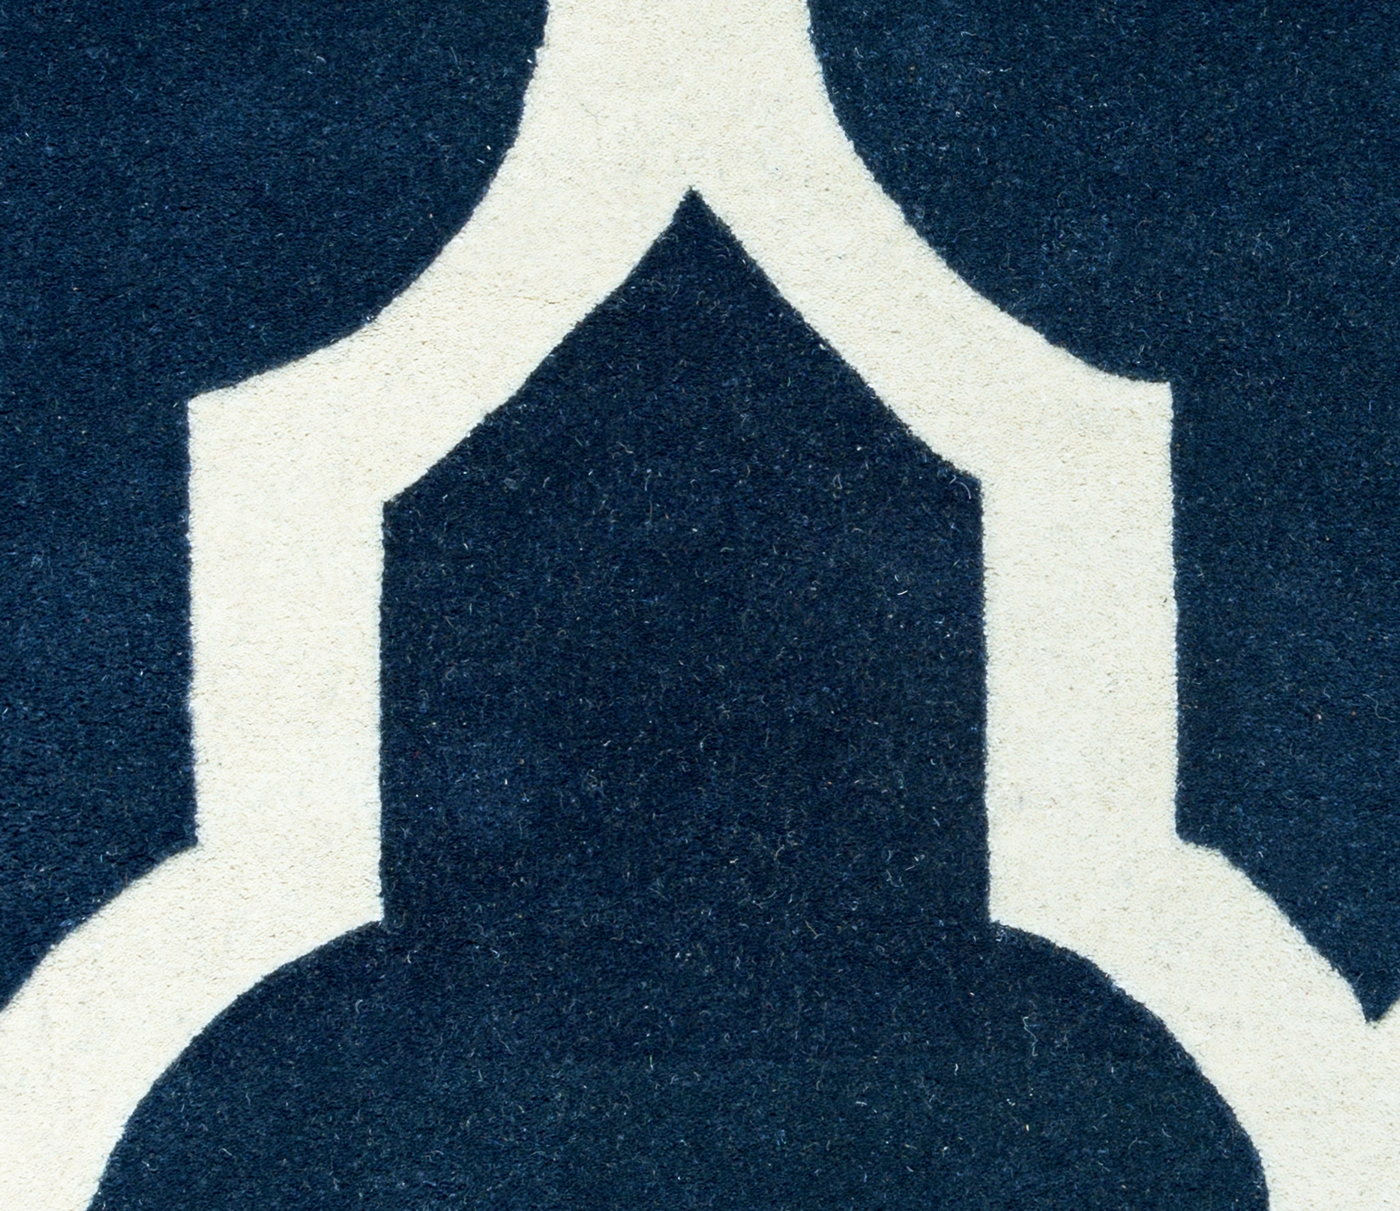 Royal Blue And White Trellis Rug: Volare Minimalist Trellis Wool Area Rug In Navy & Off